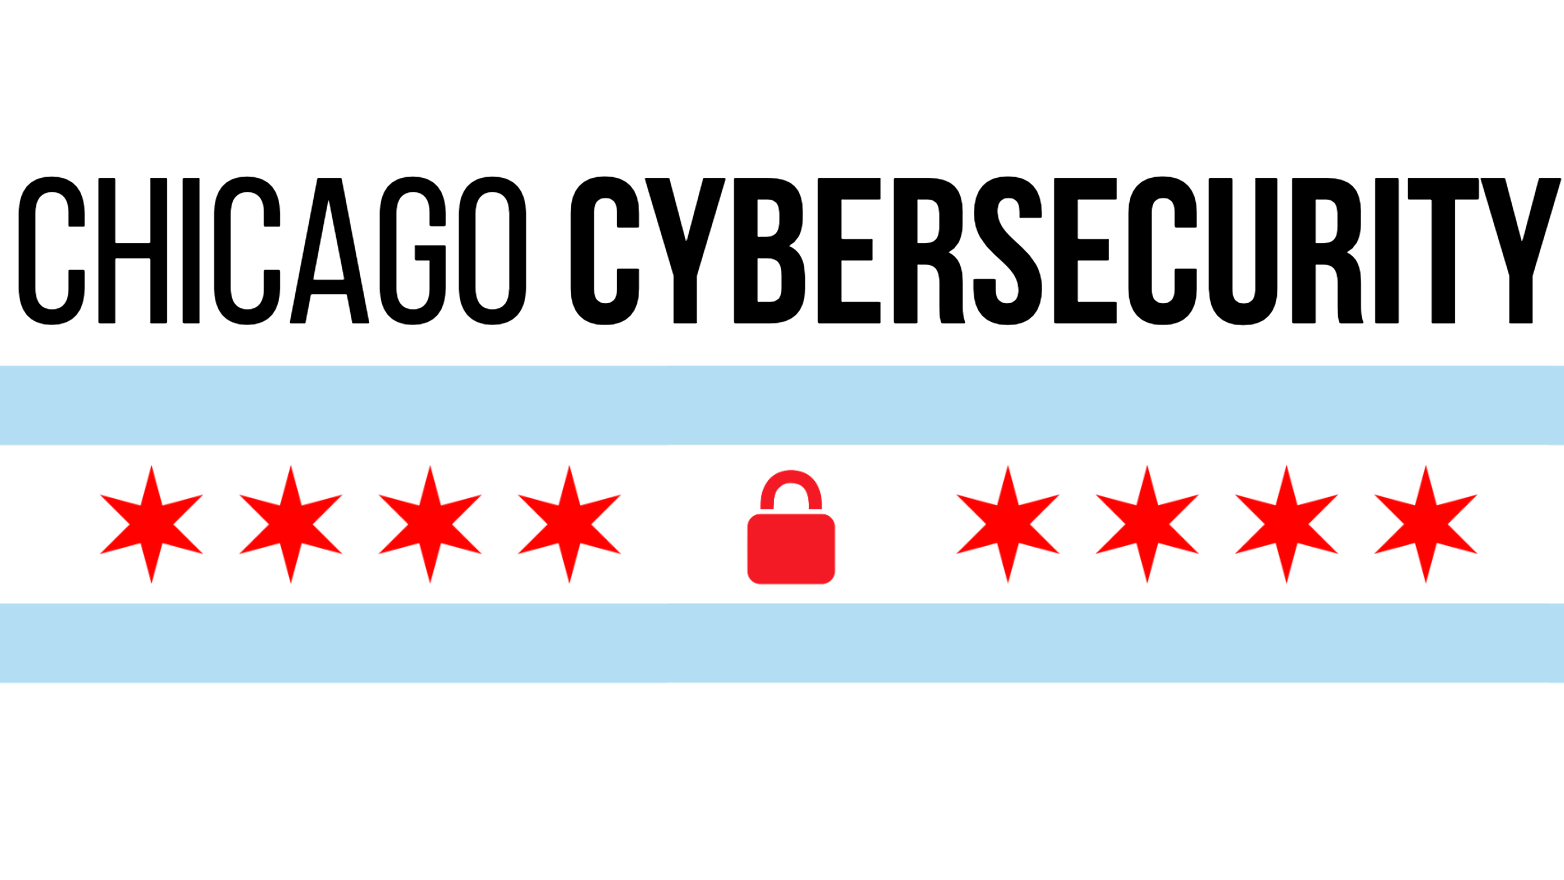 CSNP - Chicago CyberSecurity